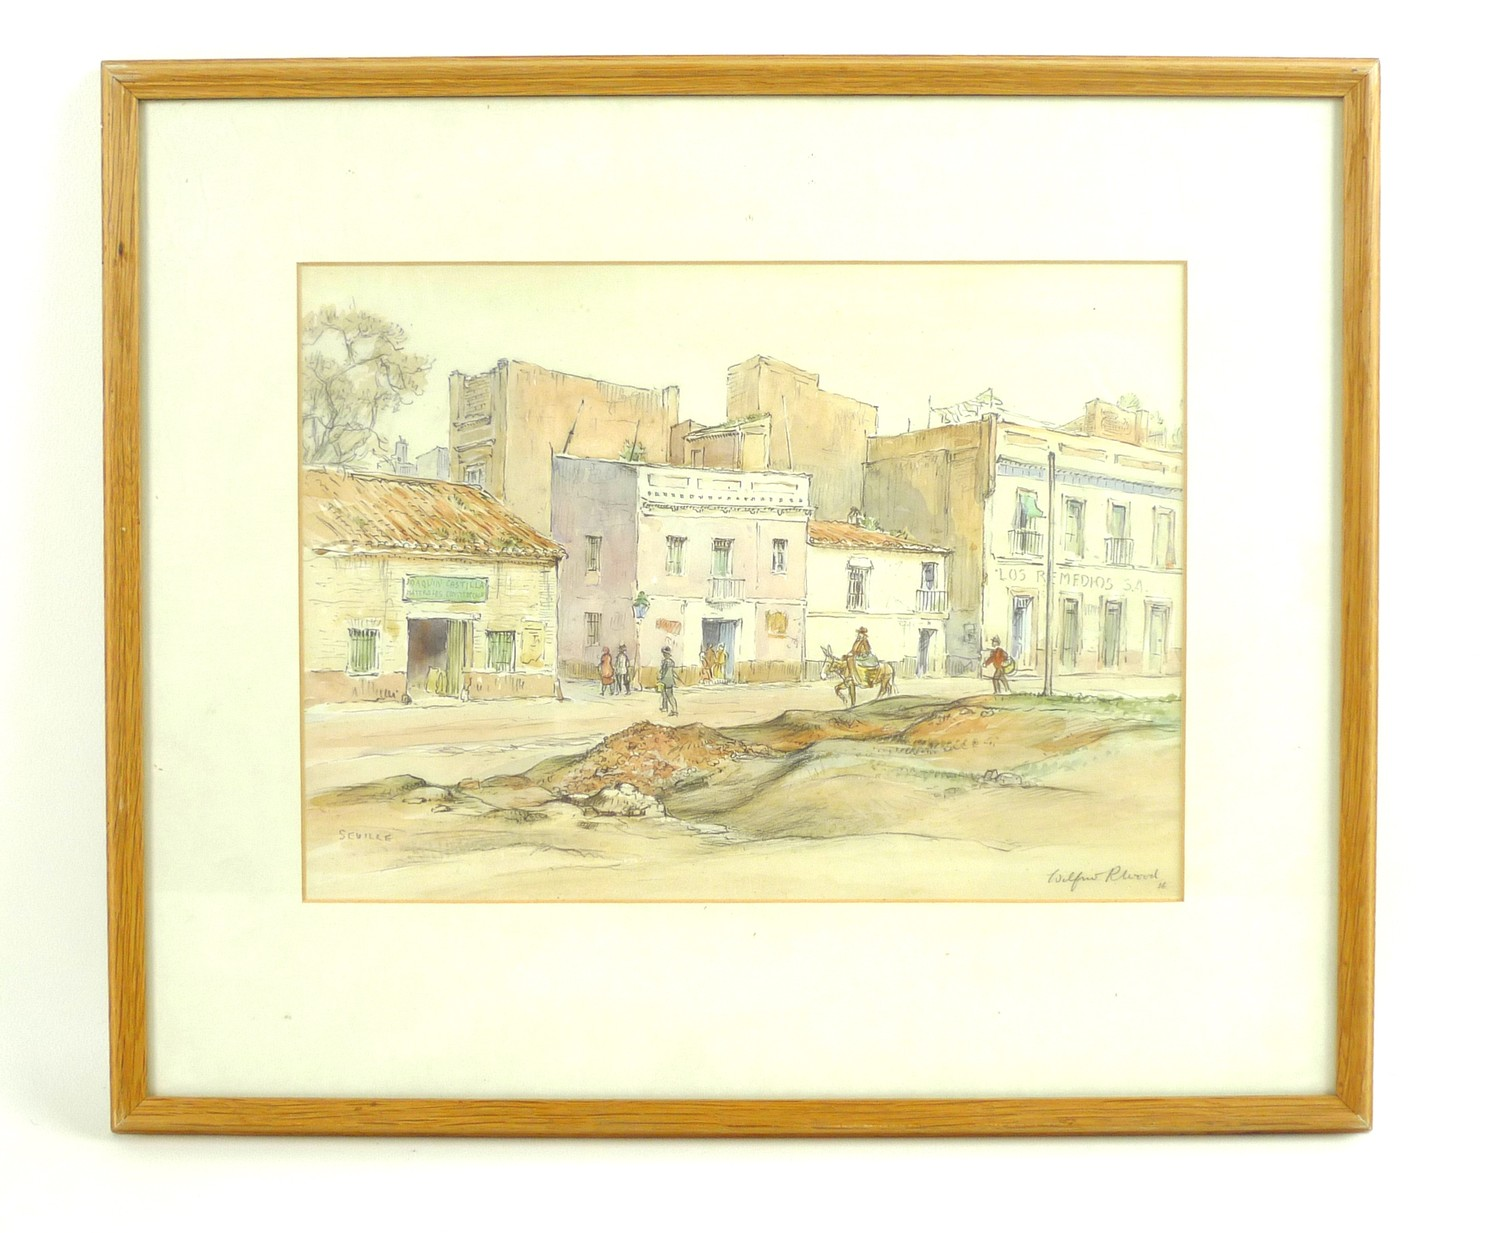 Wilfrid Rene Wood (British, 1888-1976): 'Seville', depicting a street scene, pencil and watercolour, - Image 2 of 4